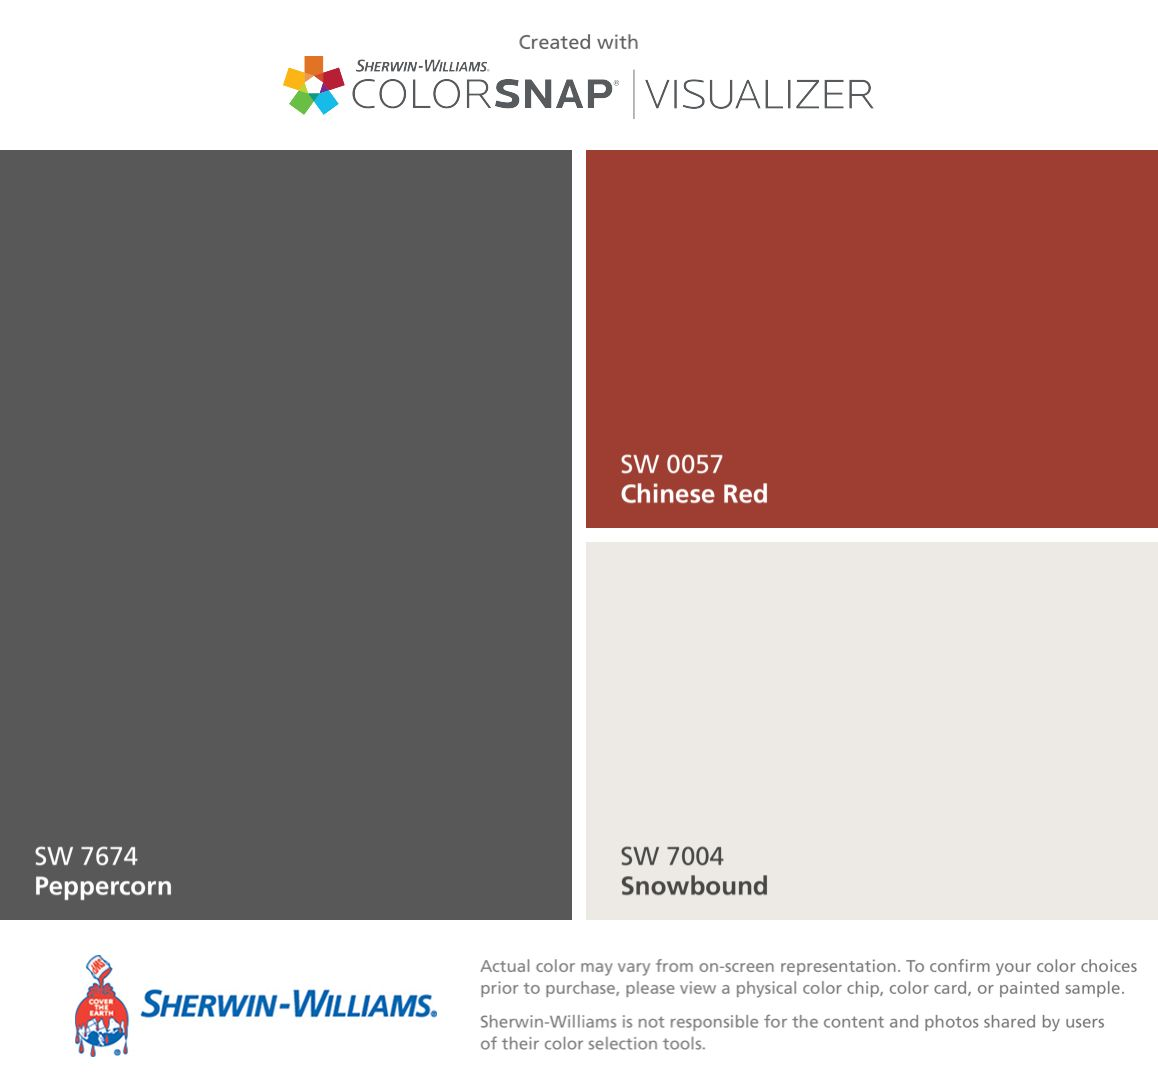 I Found These Colors With Colorsnap Visualizer For Iphone By Sherwin Williams Peppercorn Sw